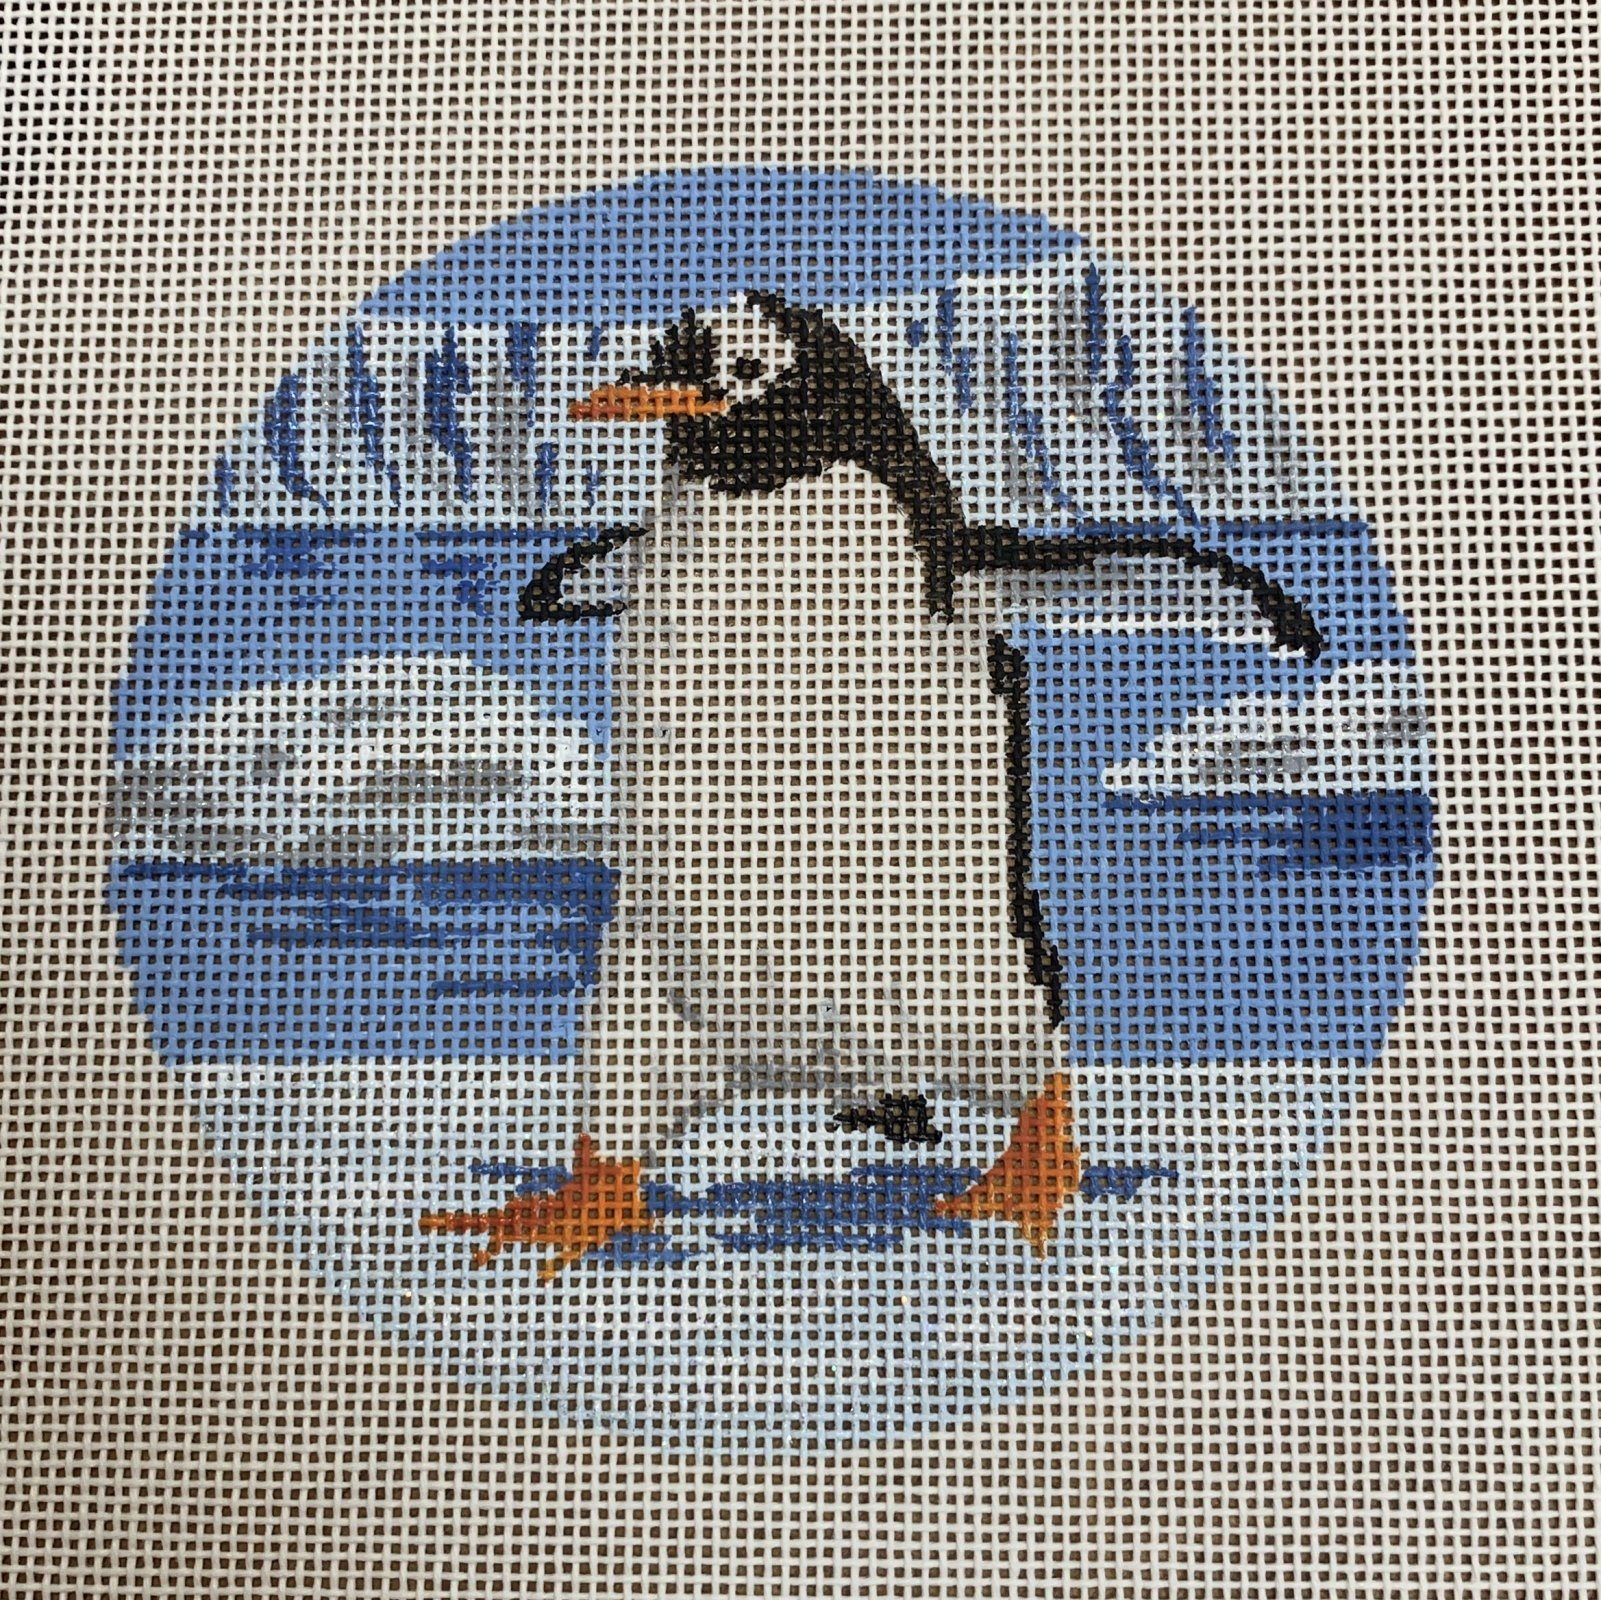 LL354 Frolicking Penguin